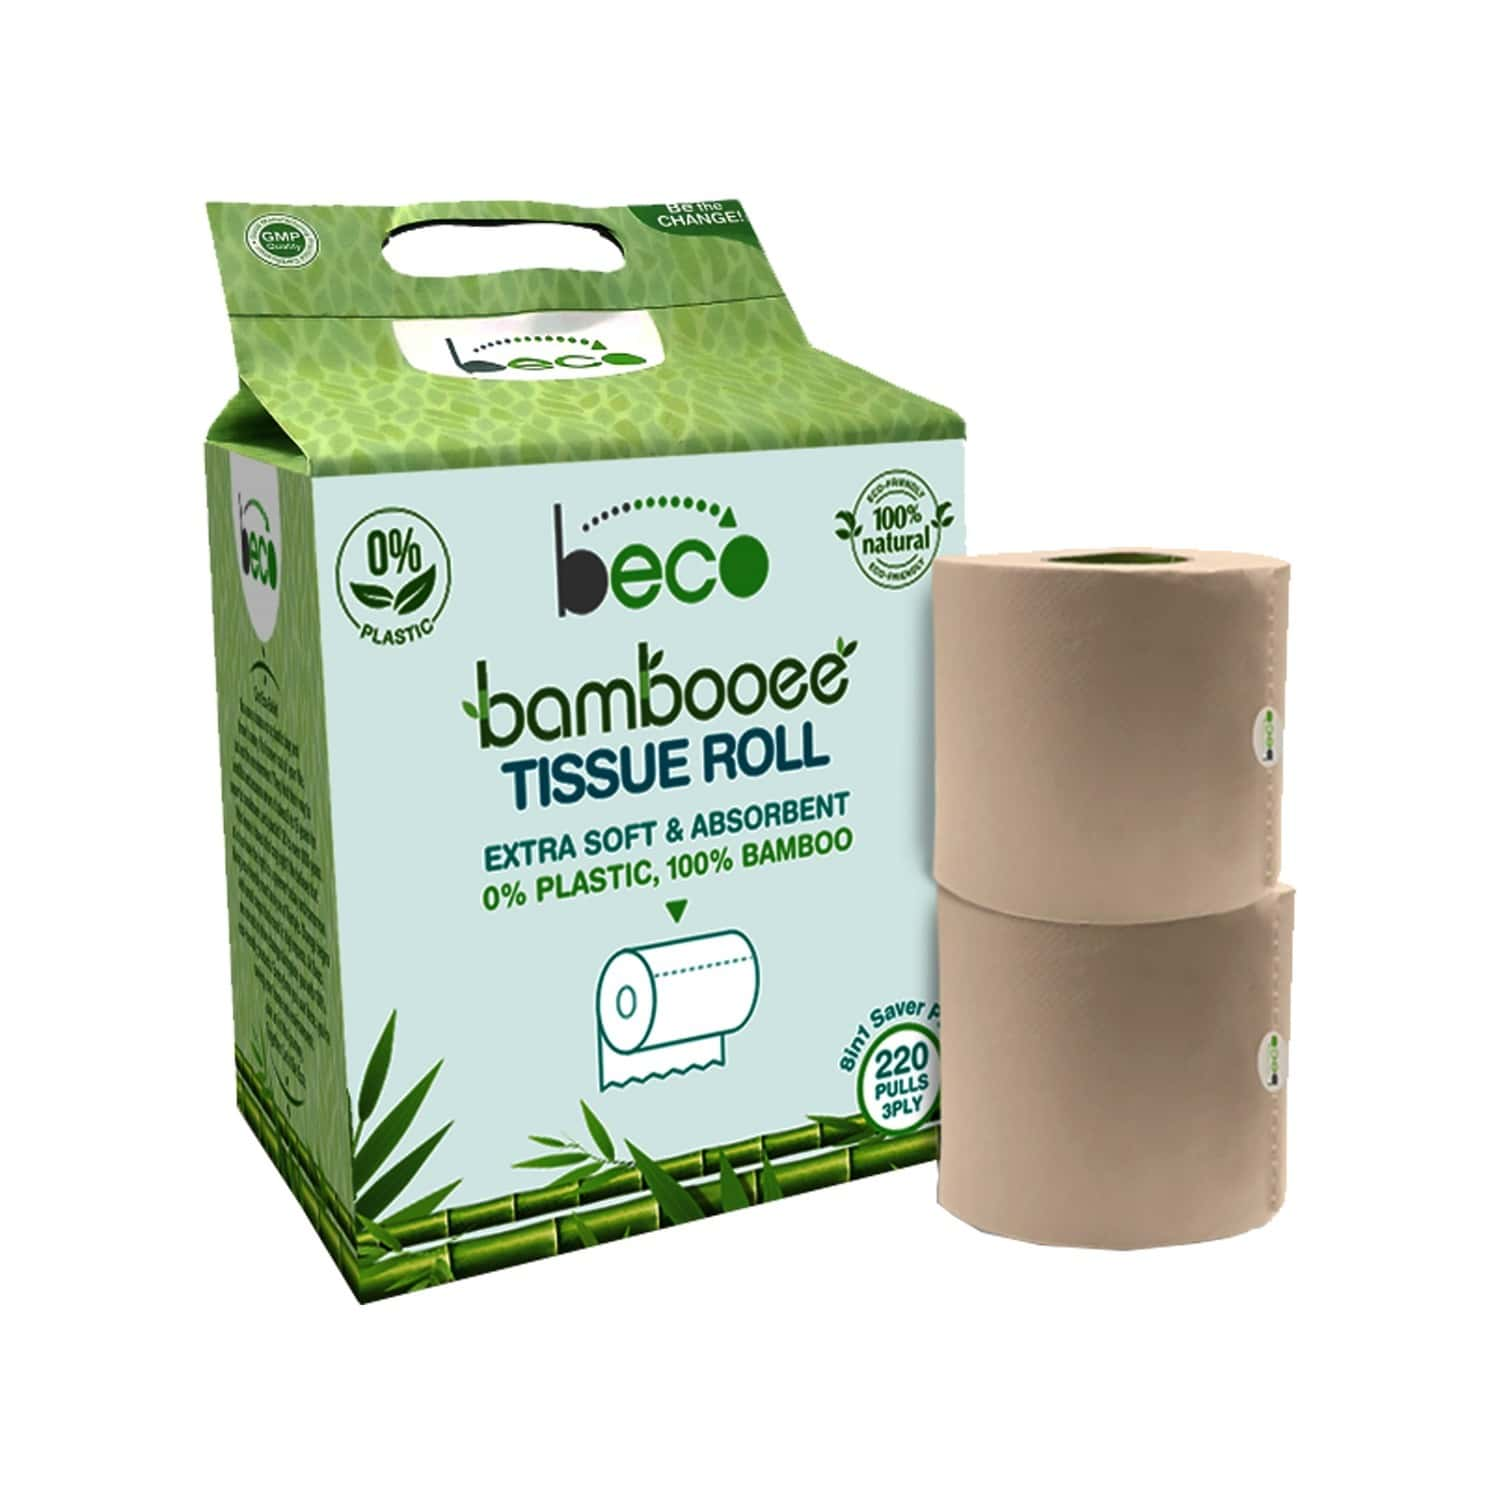 Beco Bambooee Tissue Roll (3 Ply) - 220 Pulls - Pack Of 8 (value Pack)